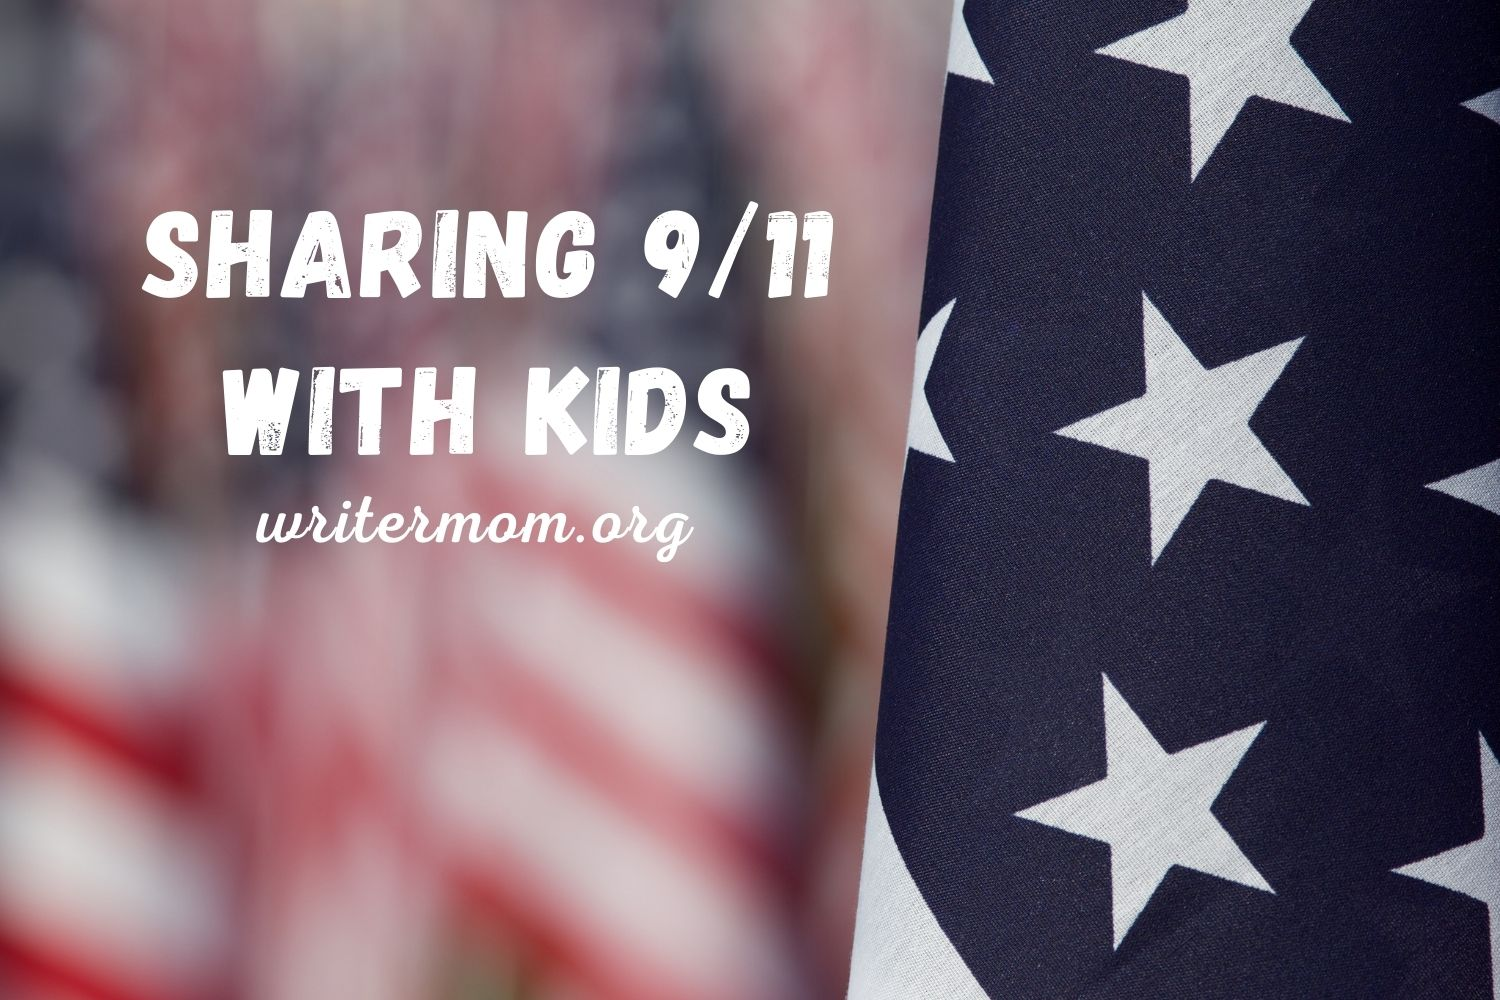 Sharing 9/11 With Kids